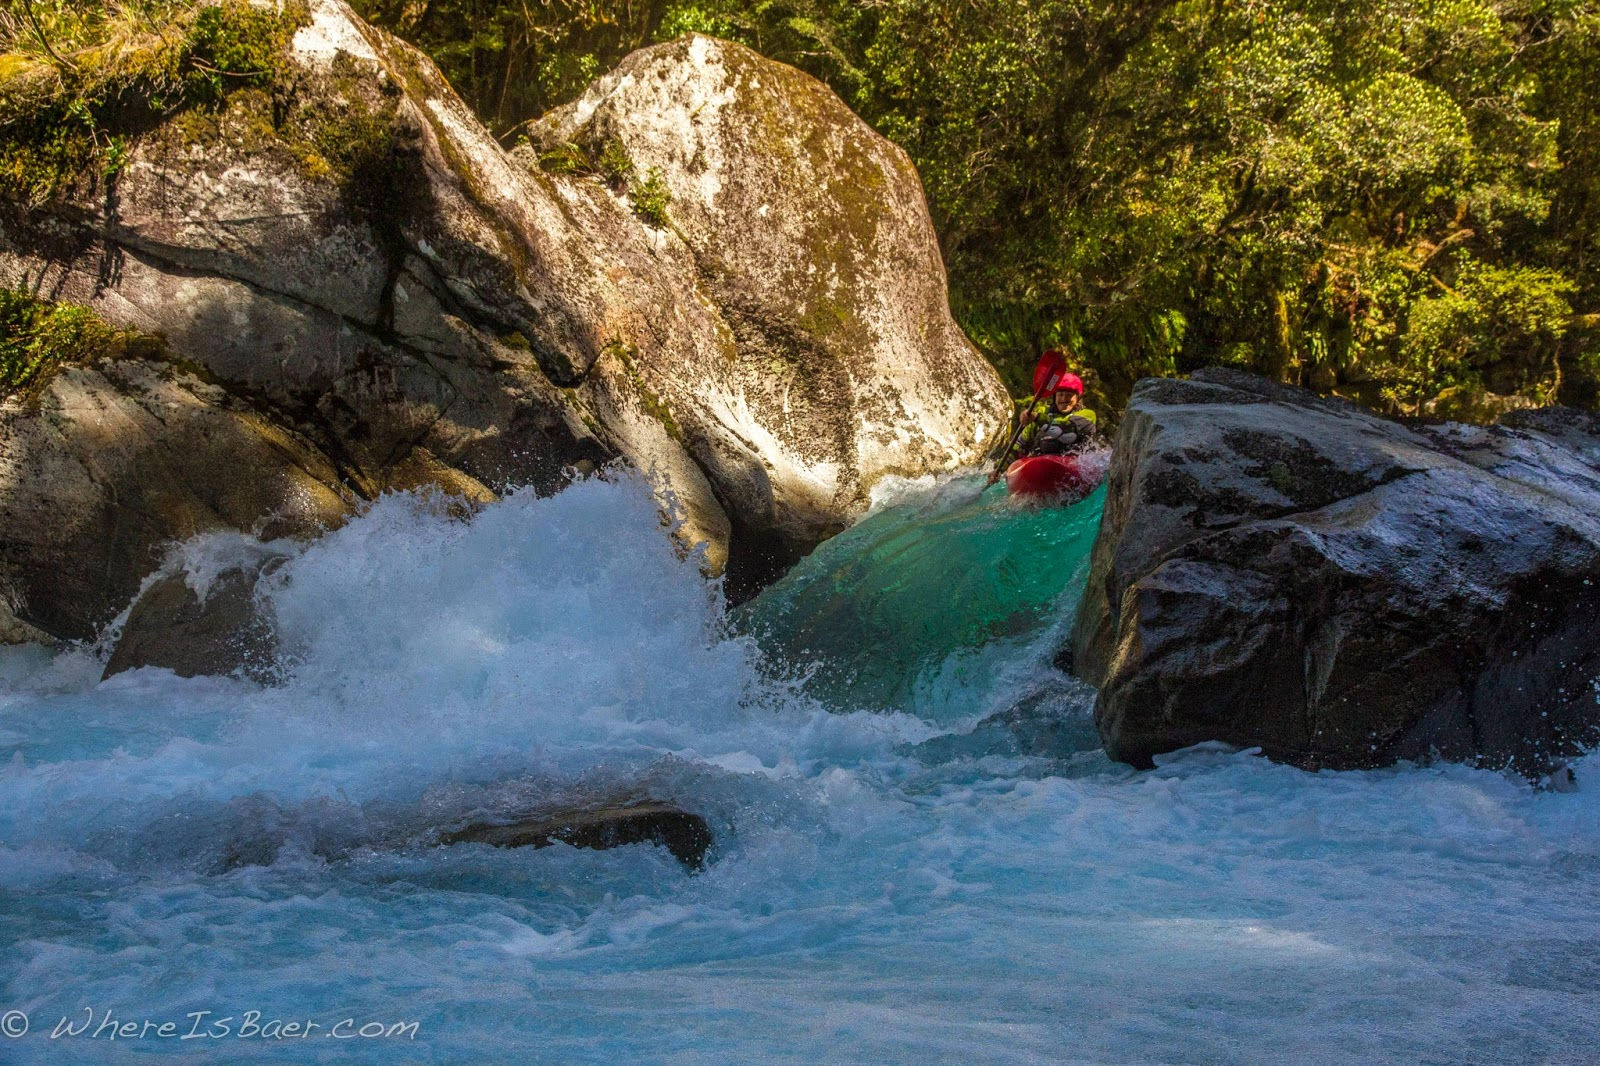 Gonzo making a tight pinch look good, hollyford river, NZ, new zealand, fiord land chris baer,